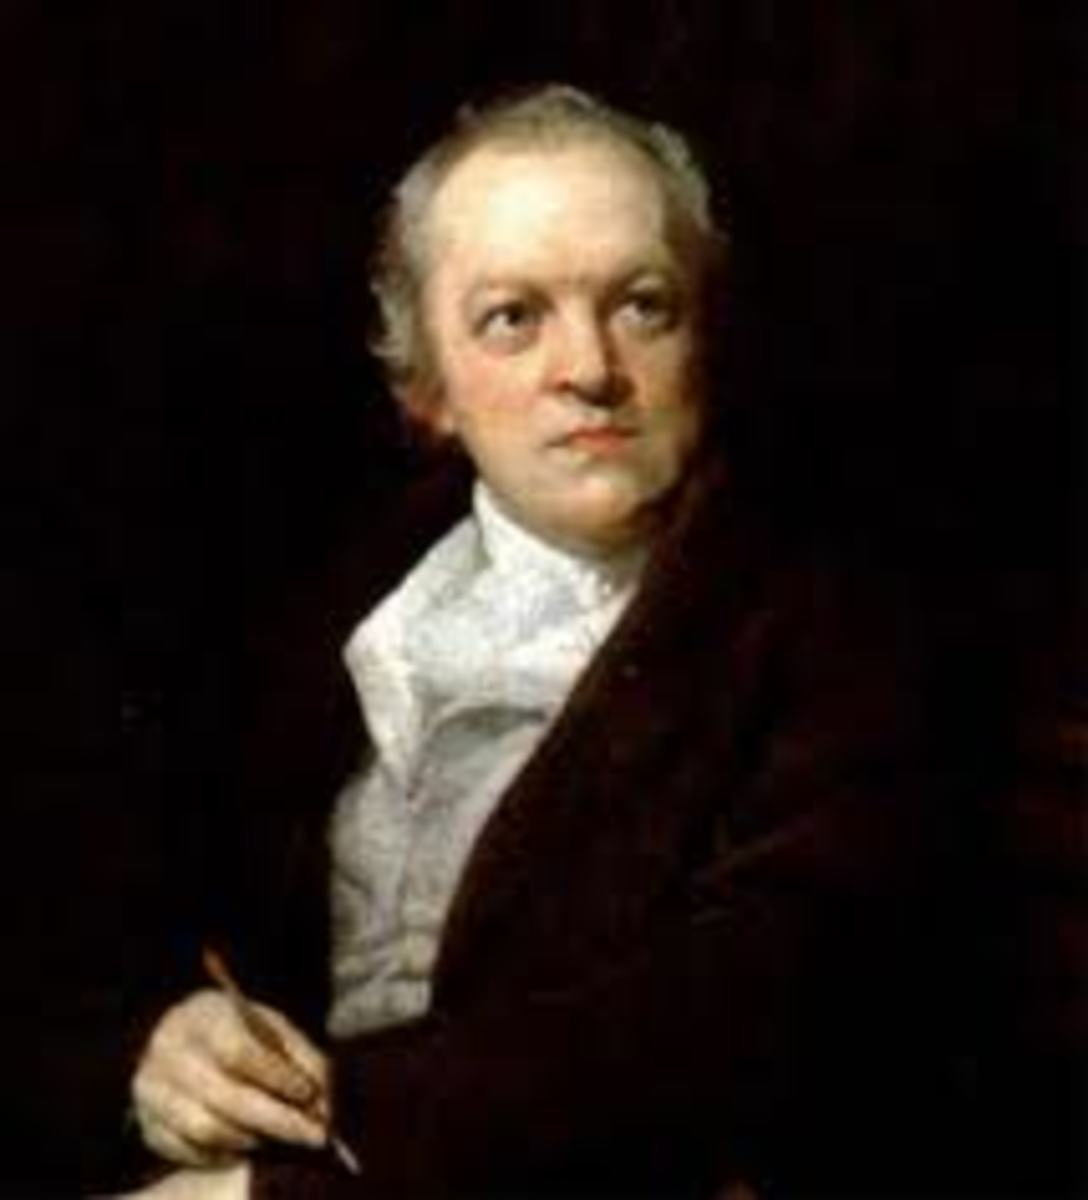 William Blake's Questions - A review and analysis of